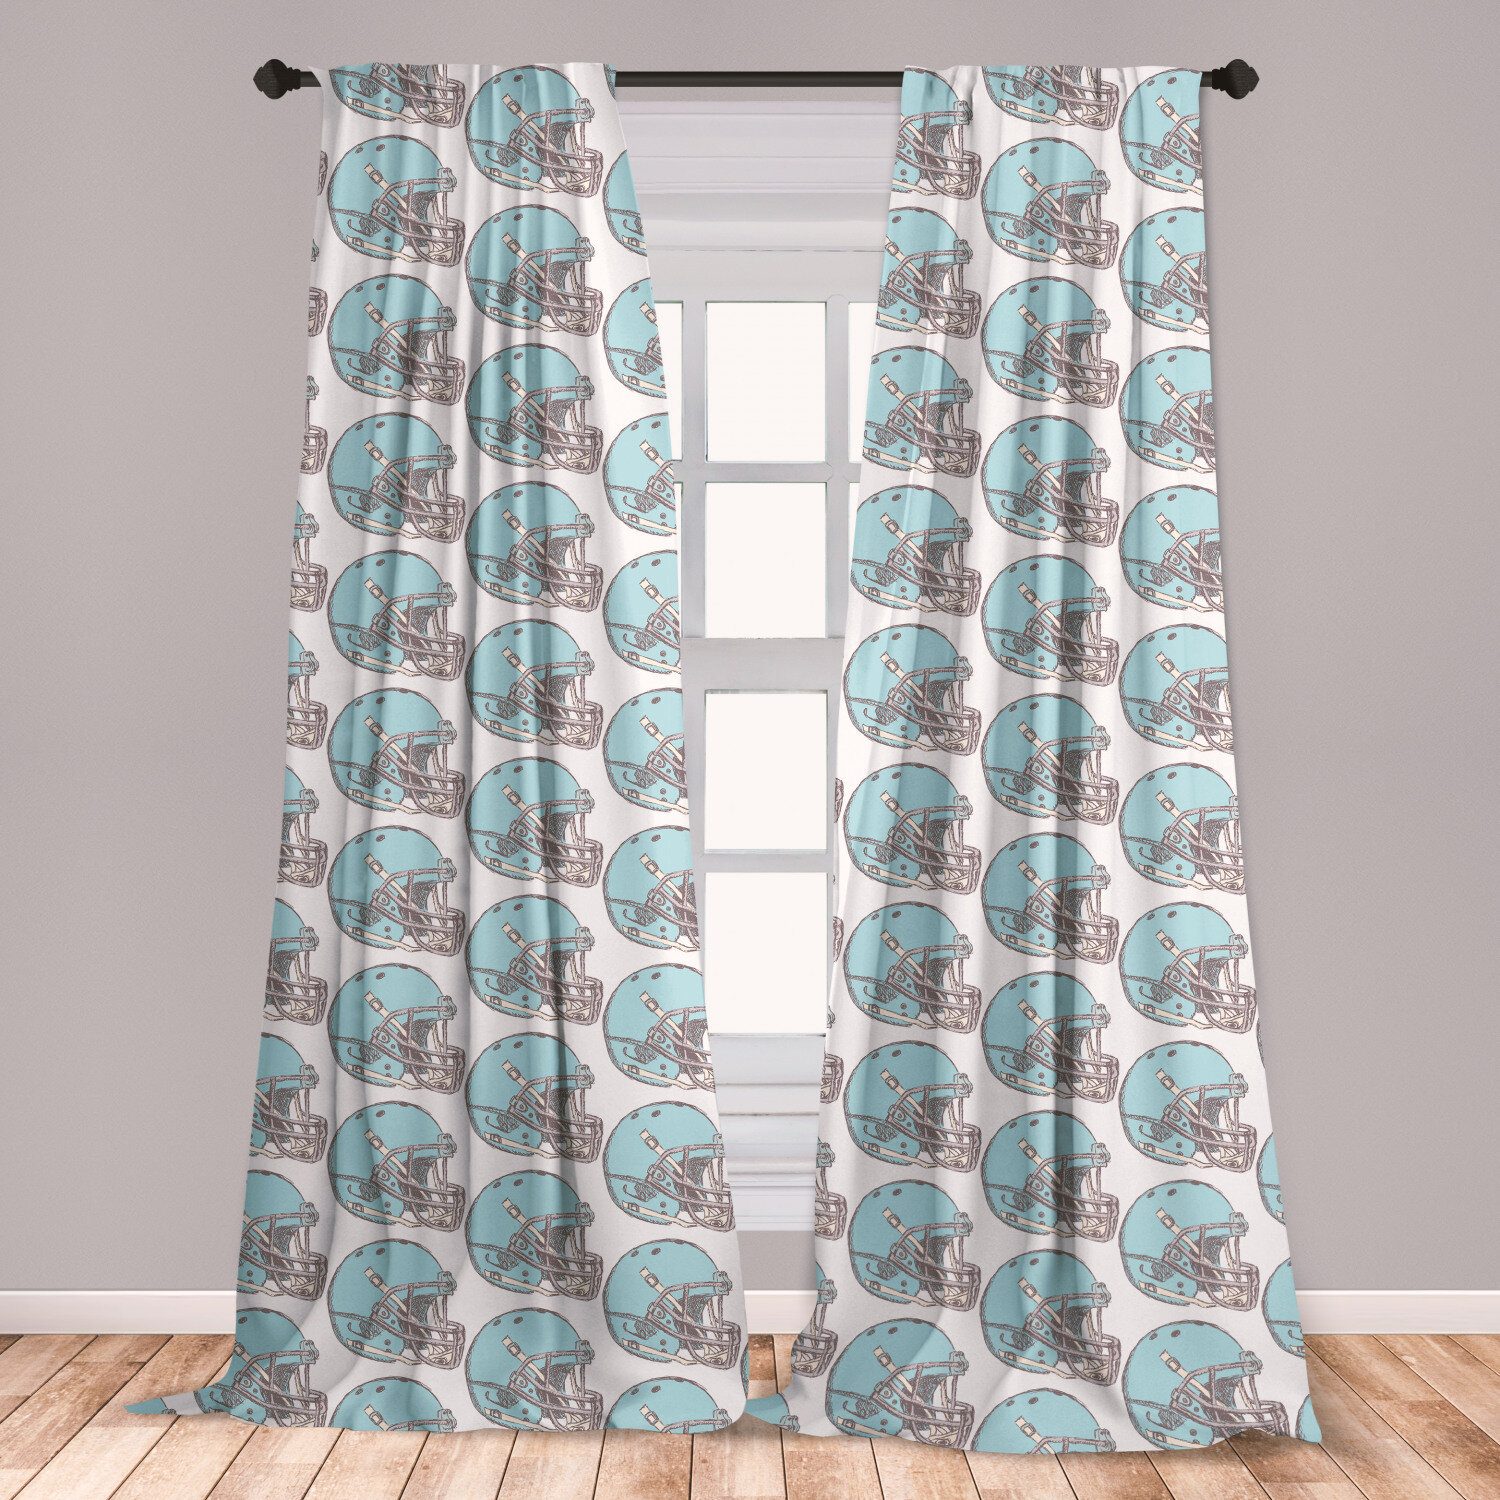 East Urban Home Ambesonne American Football Curtains Sketchy Style Safety Protection Vintage Pattern American Athletics Window Treatments 2 Panel Set For Living Room Bedroom Decor 56 X 63 Aqua Grey Cream Wayfair